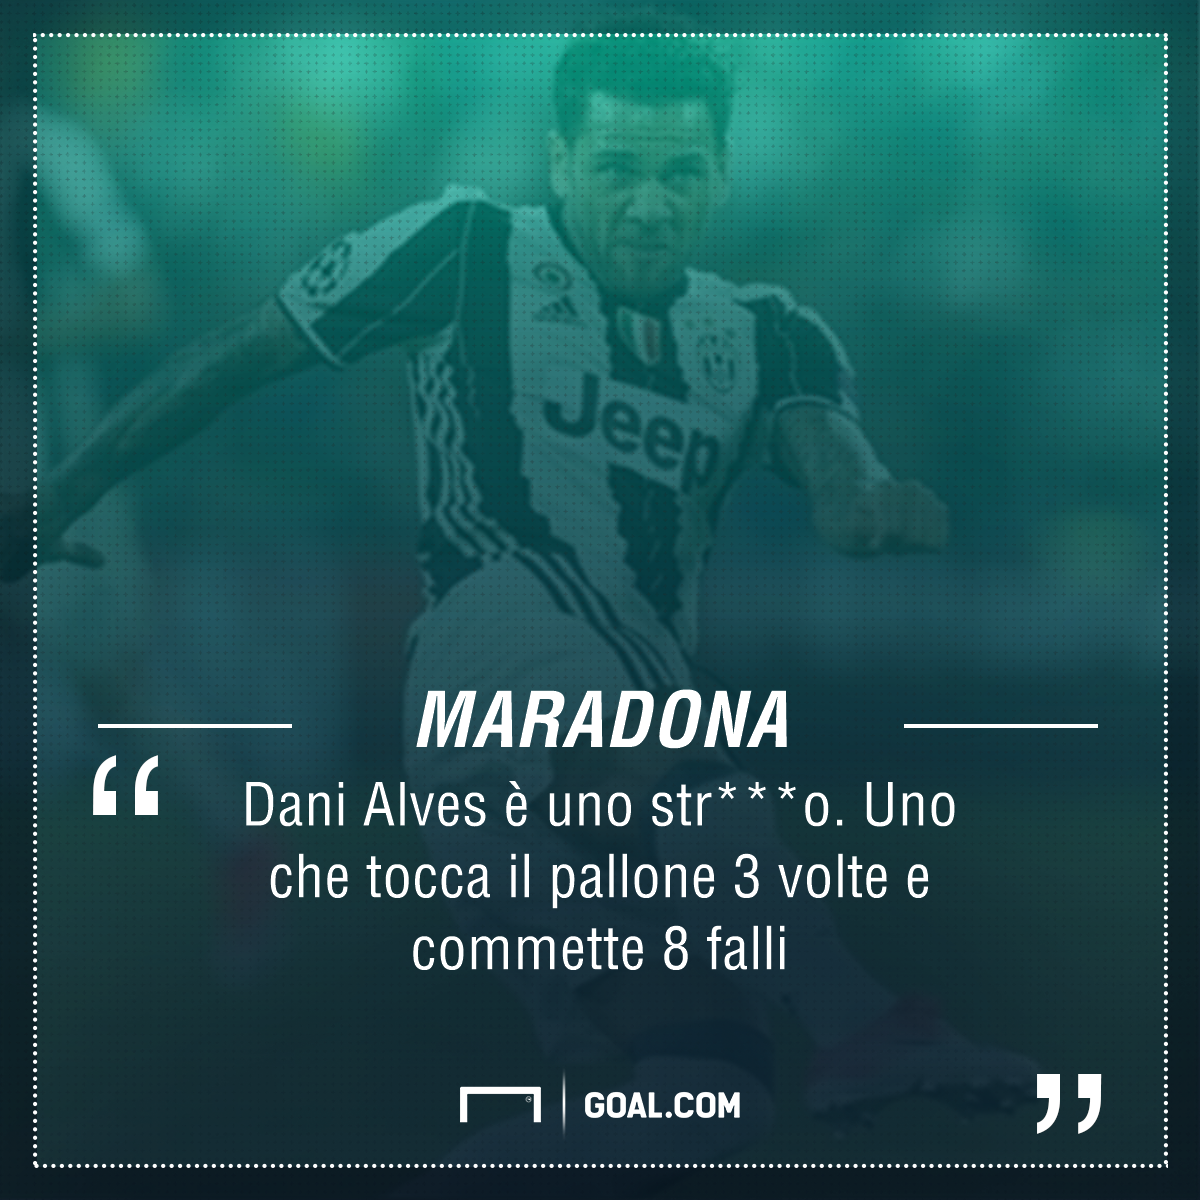 Dani Alves Maradona PS